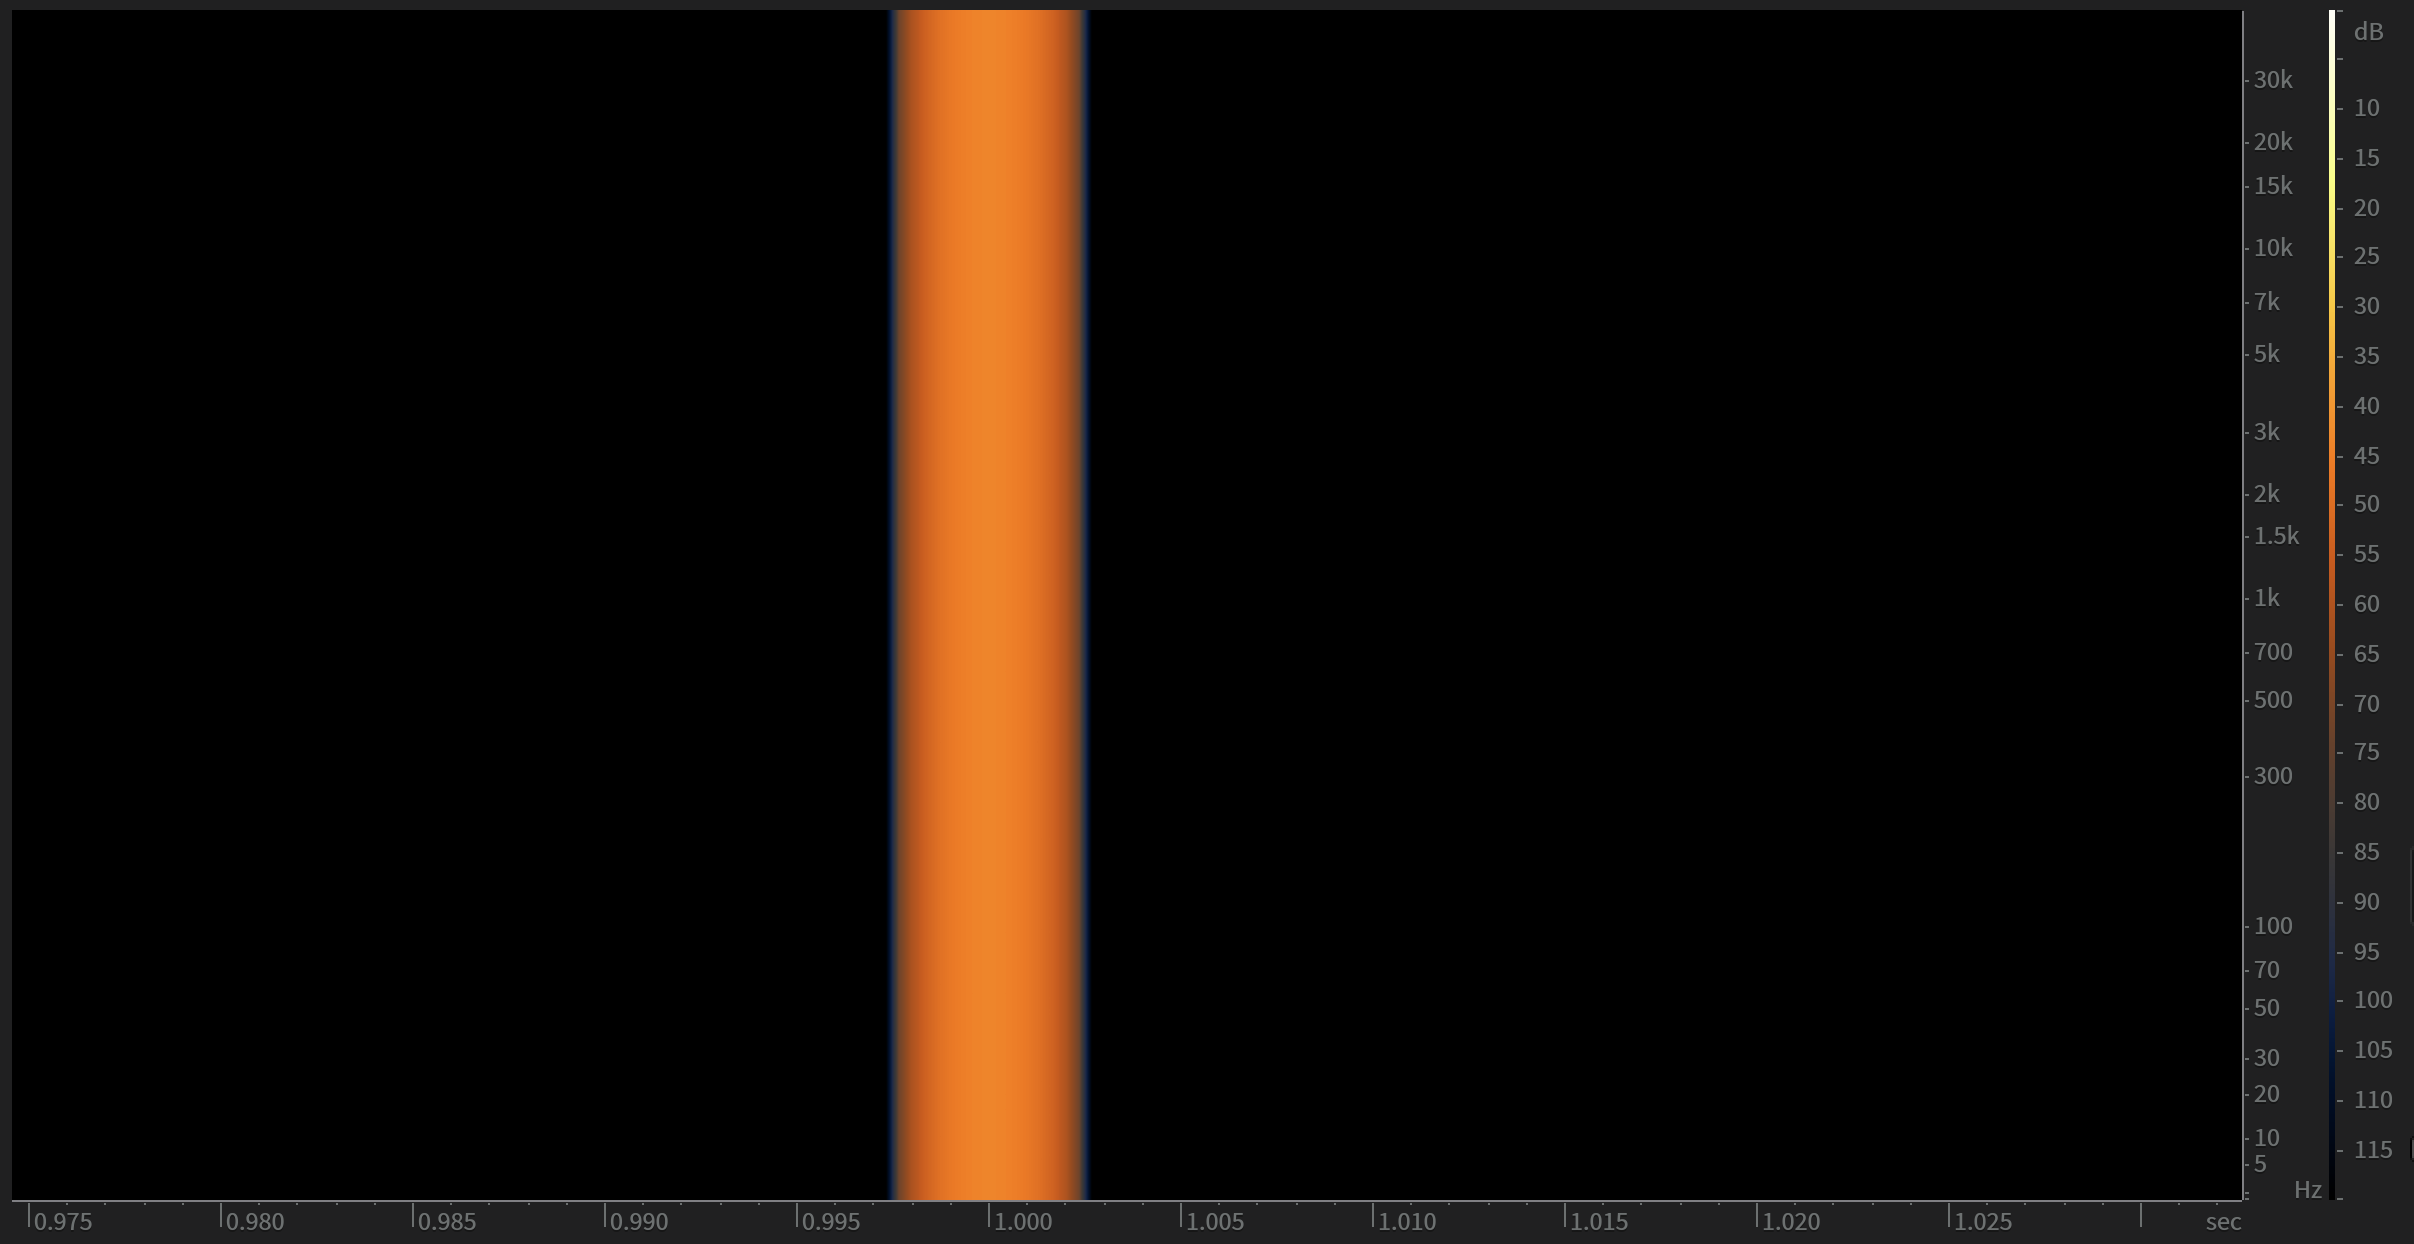 From the spectrogram of the impulse it is clearly visible that it has equal energy through the entire audio range.